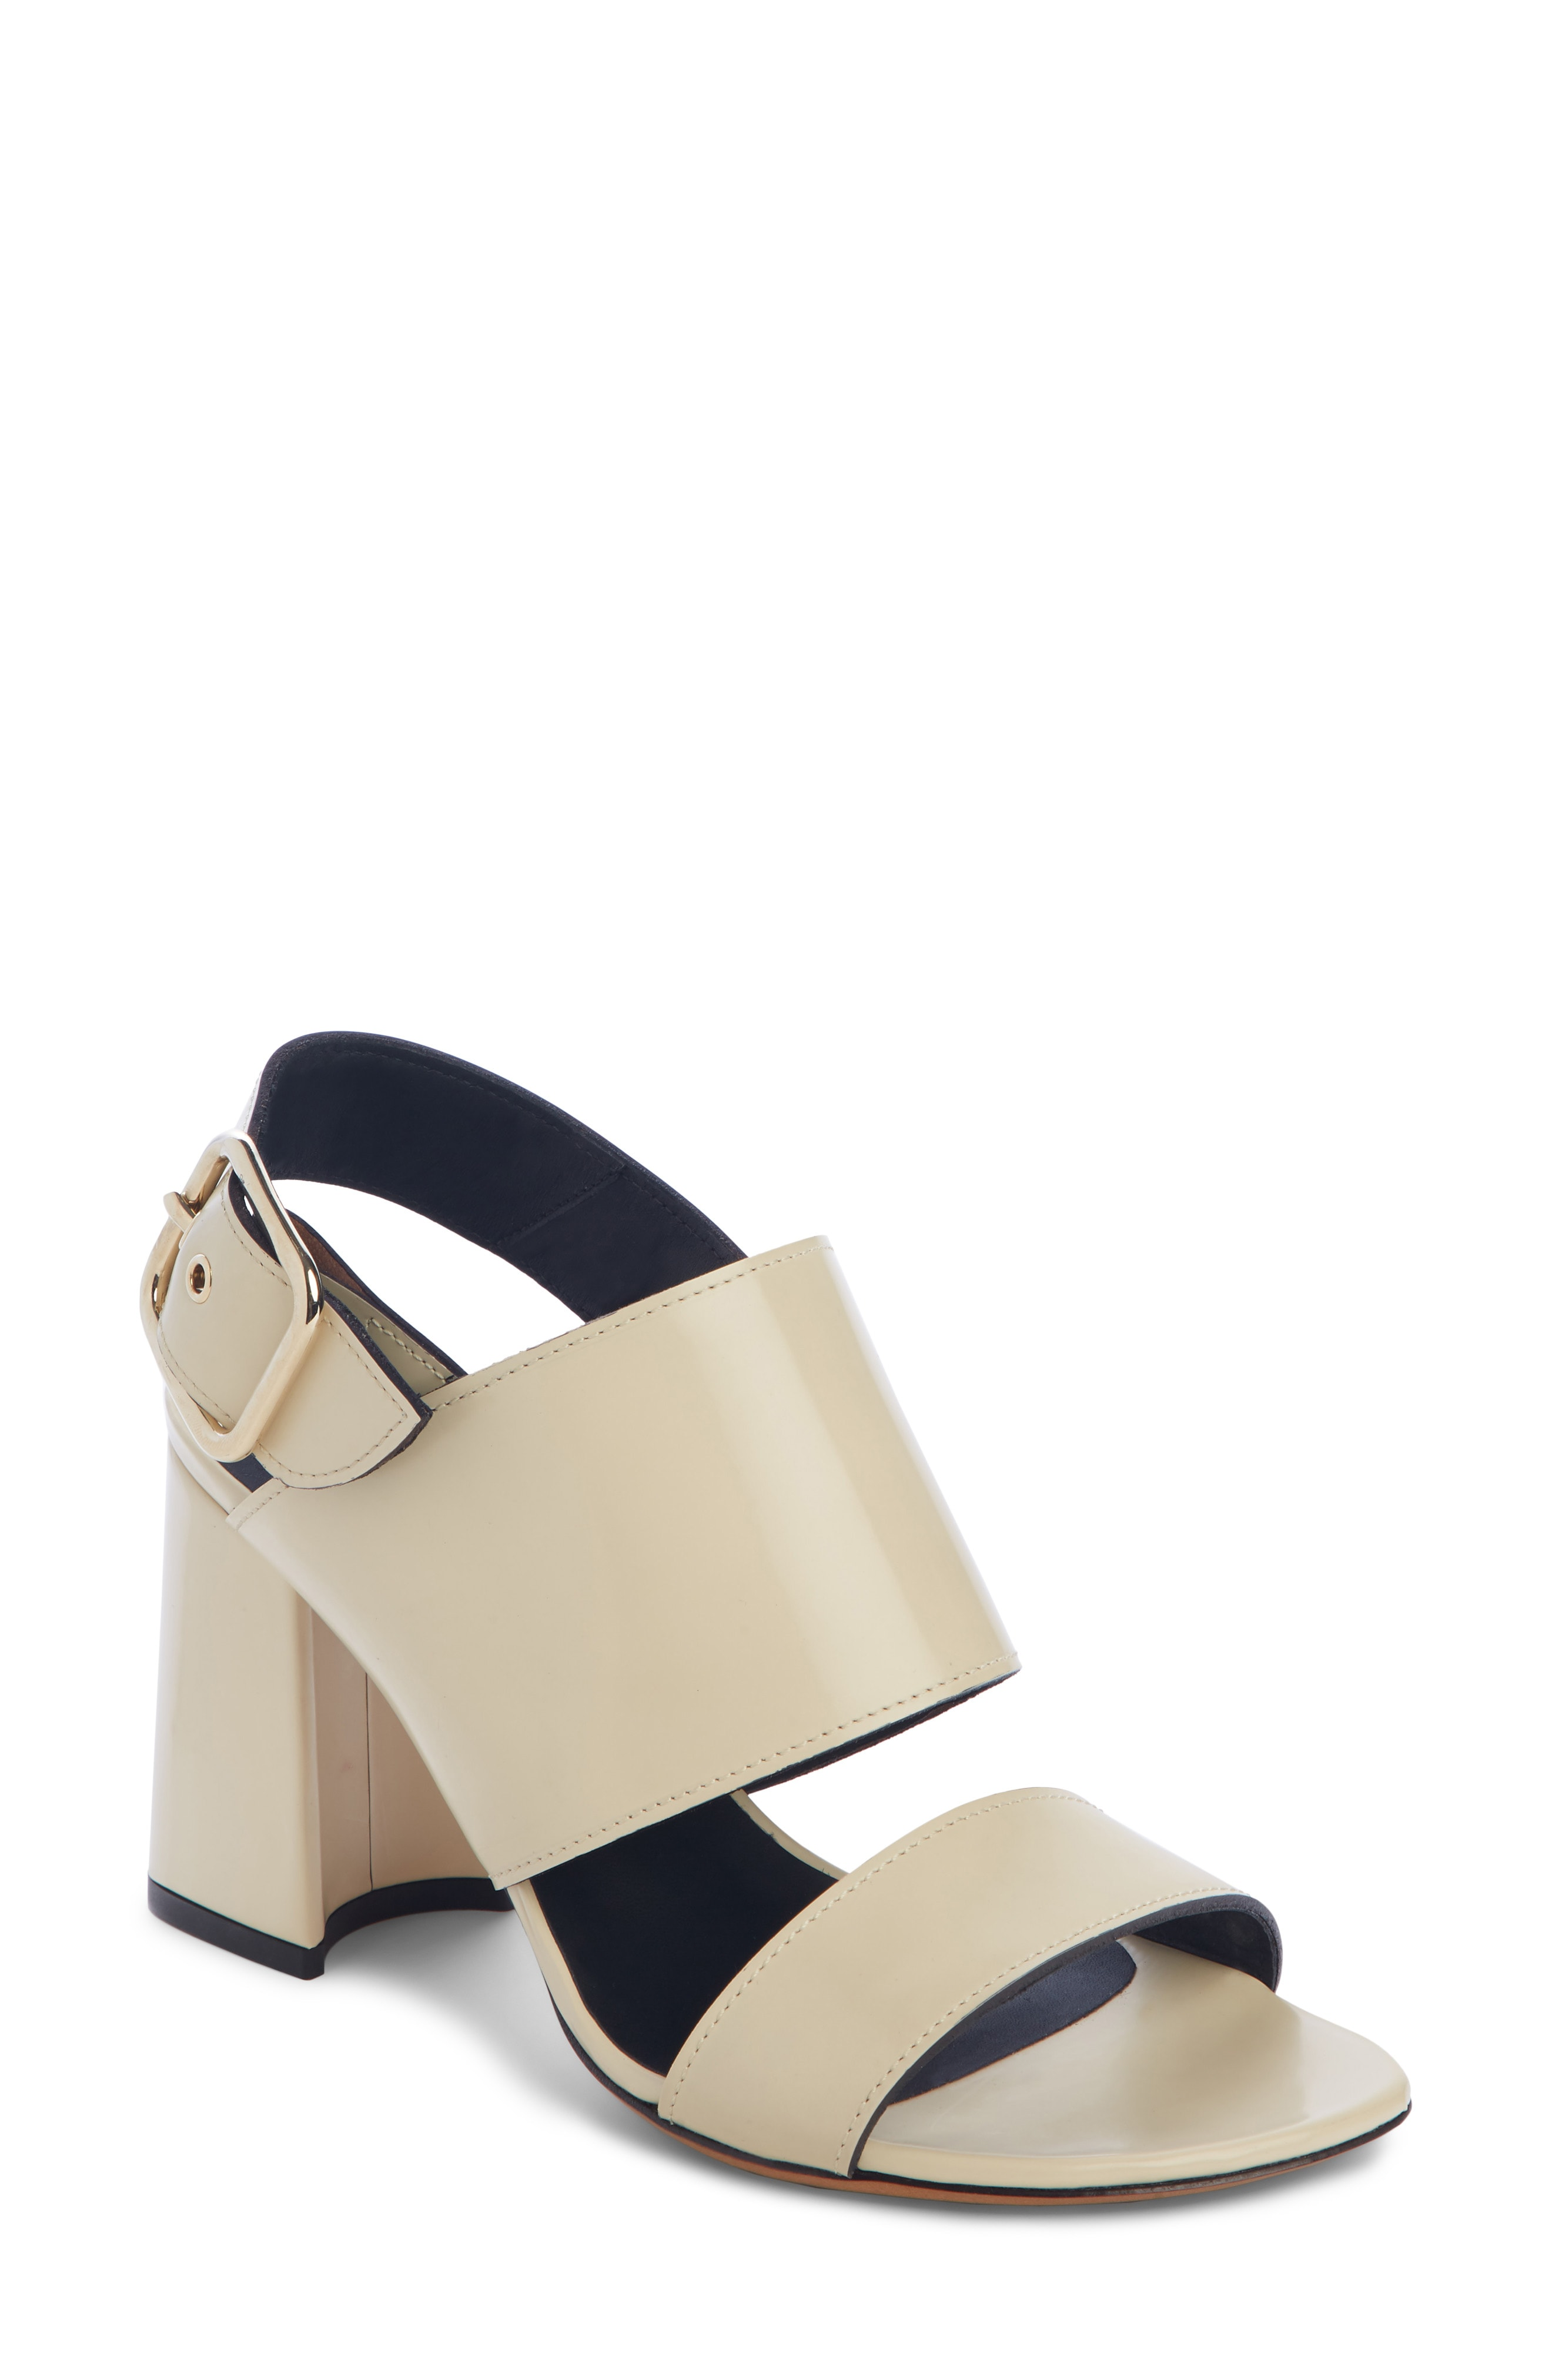 Women's Dries Van Noten Shoes | Nordstrom